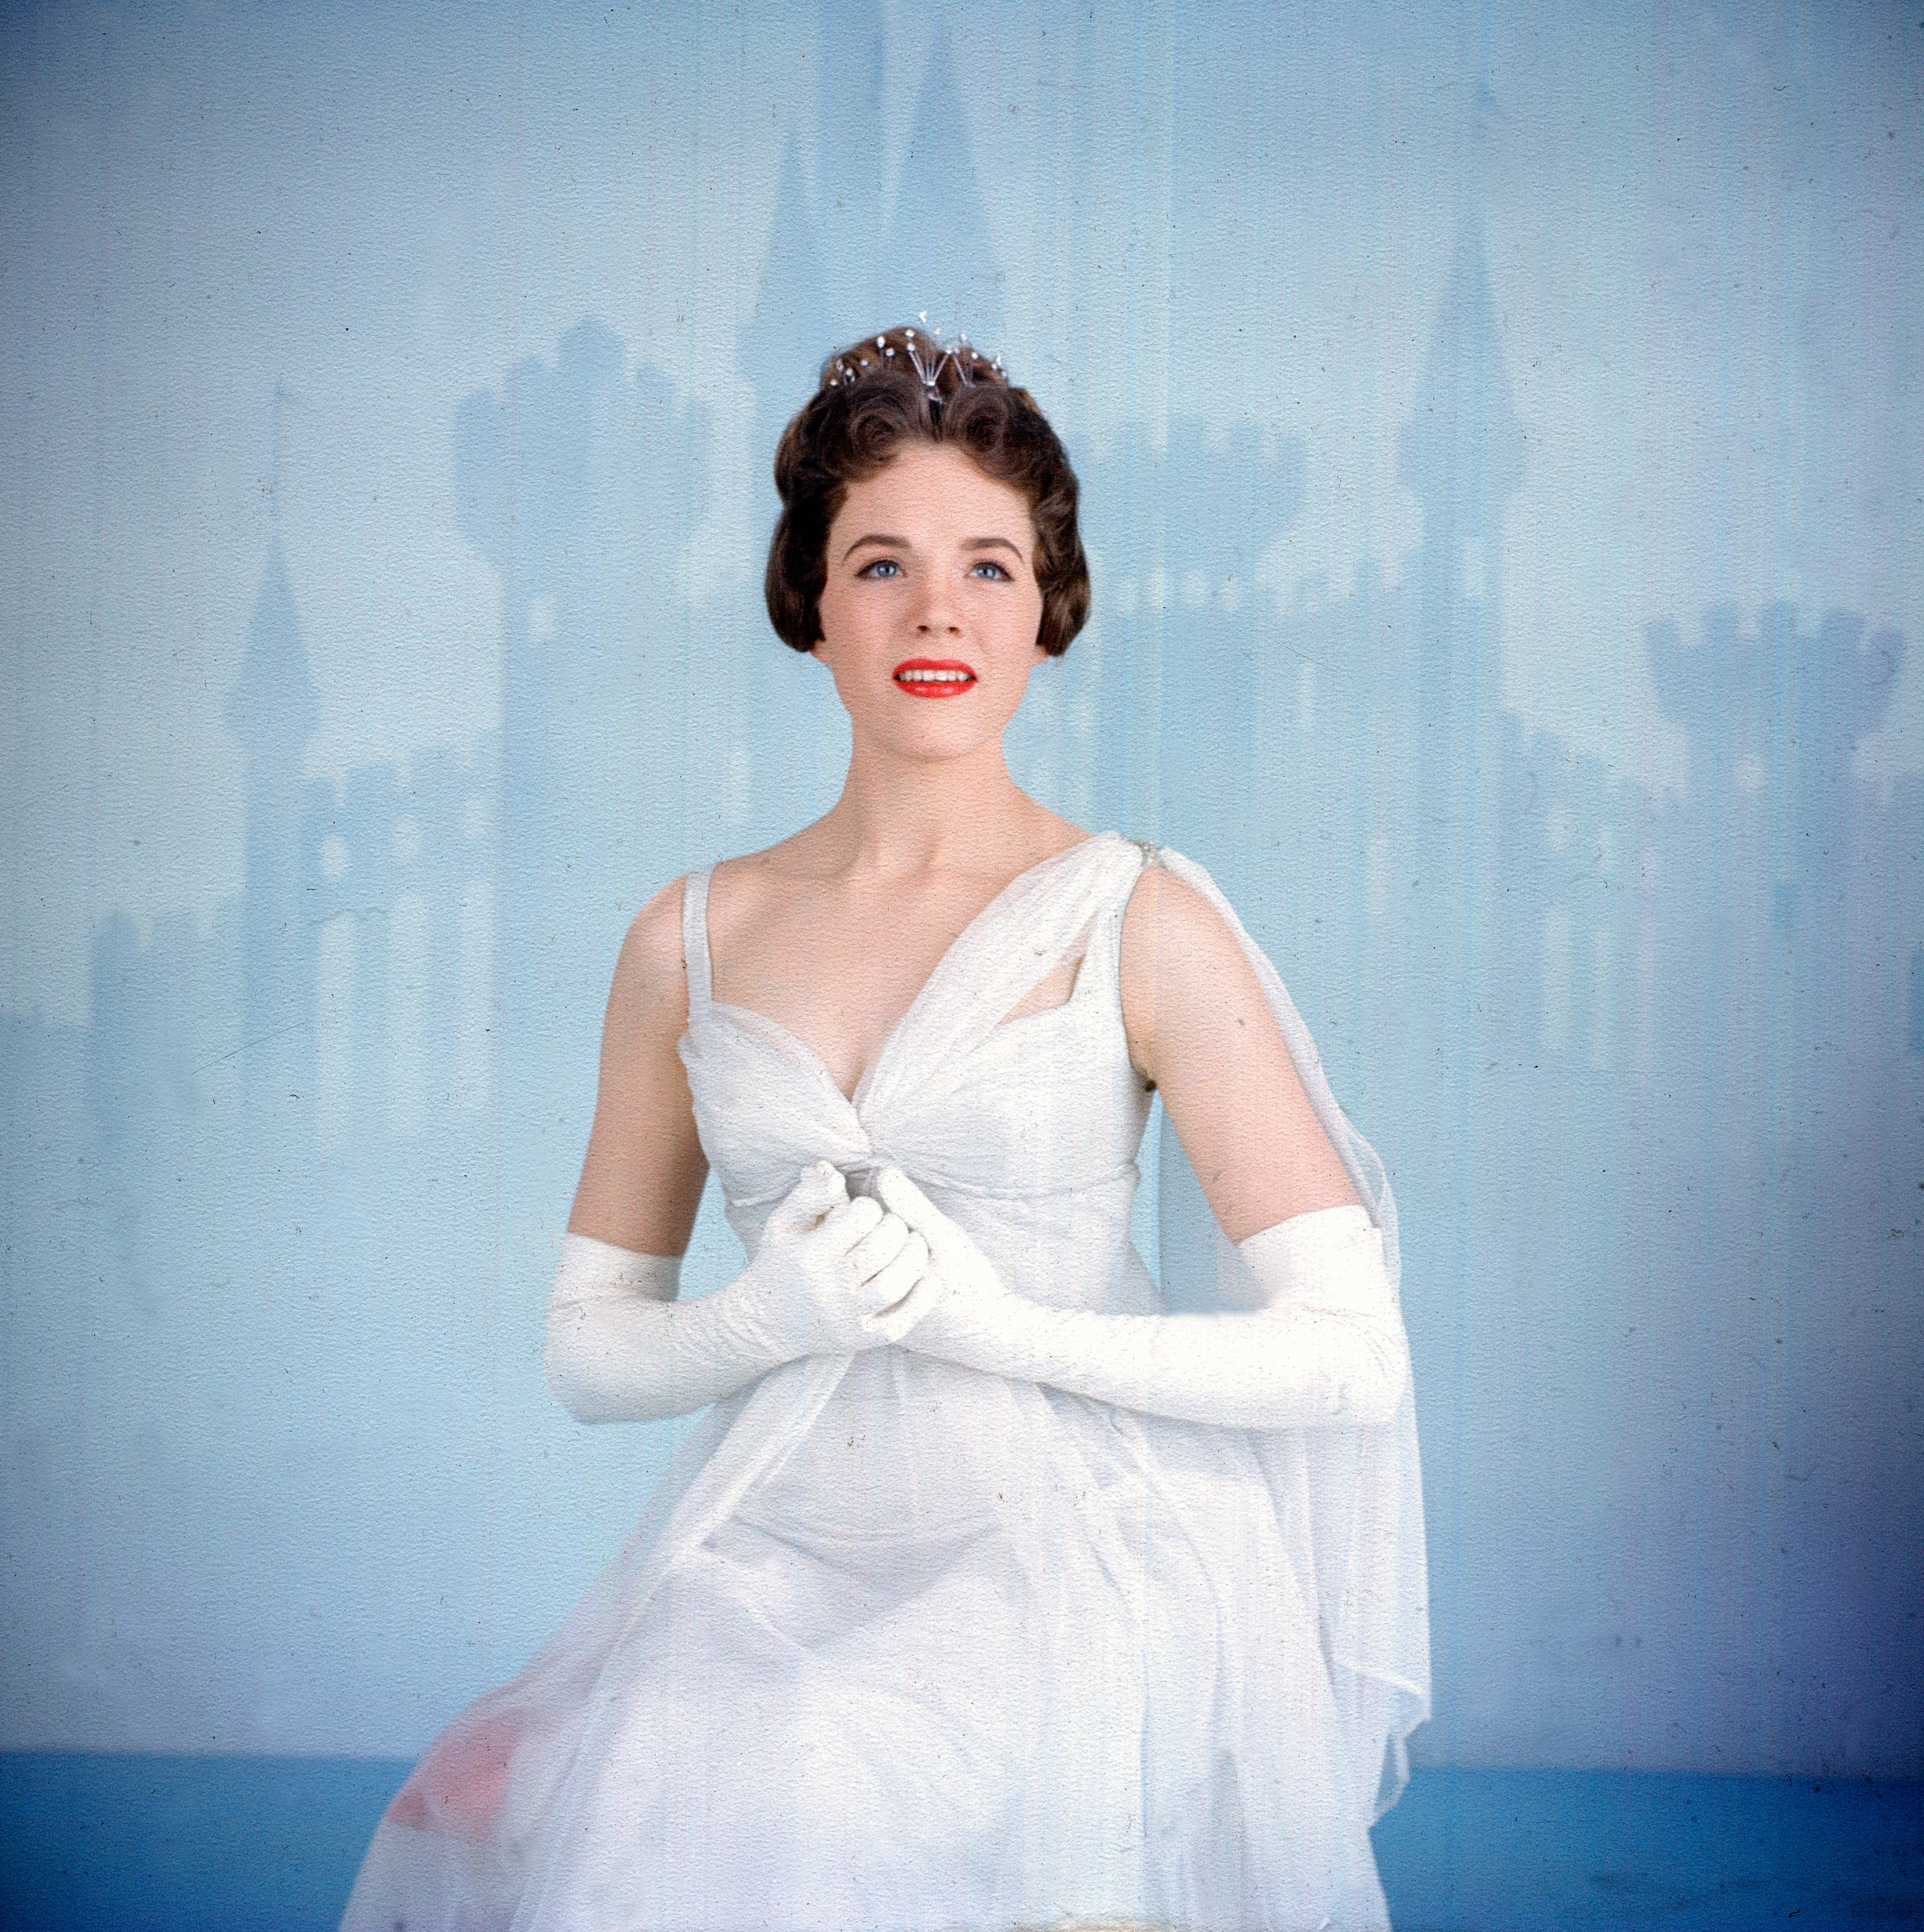 Dress as Cinderella à la Julie Andrews, in princess ball gown, tiara and white gloves for the 1957 live broadcast of the Rodgers and Hammerstein musical.